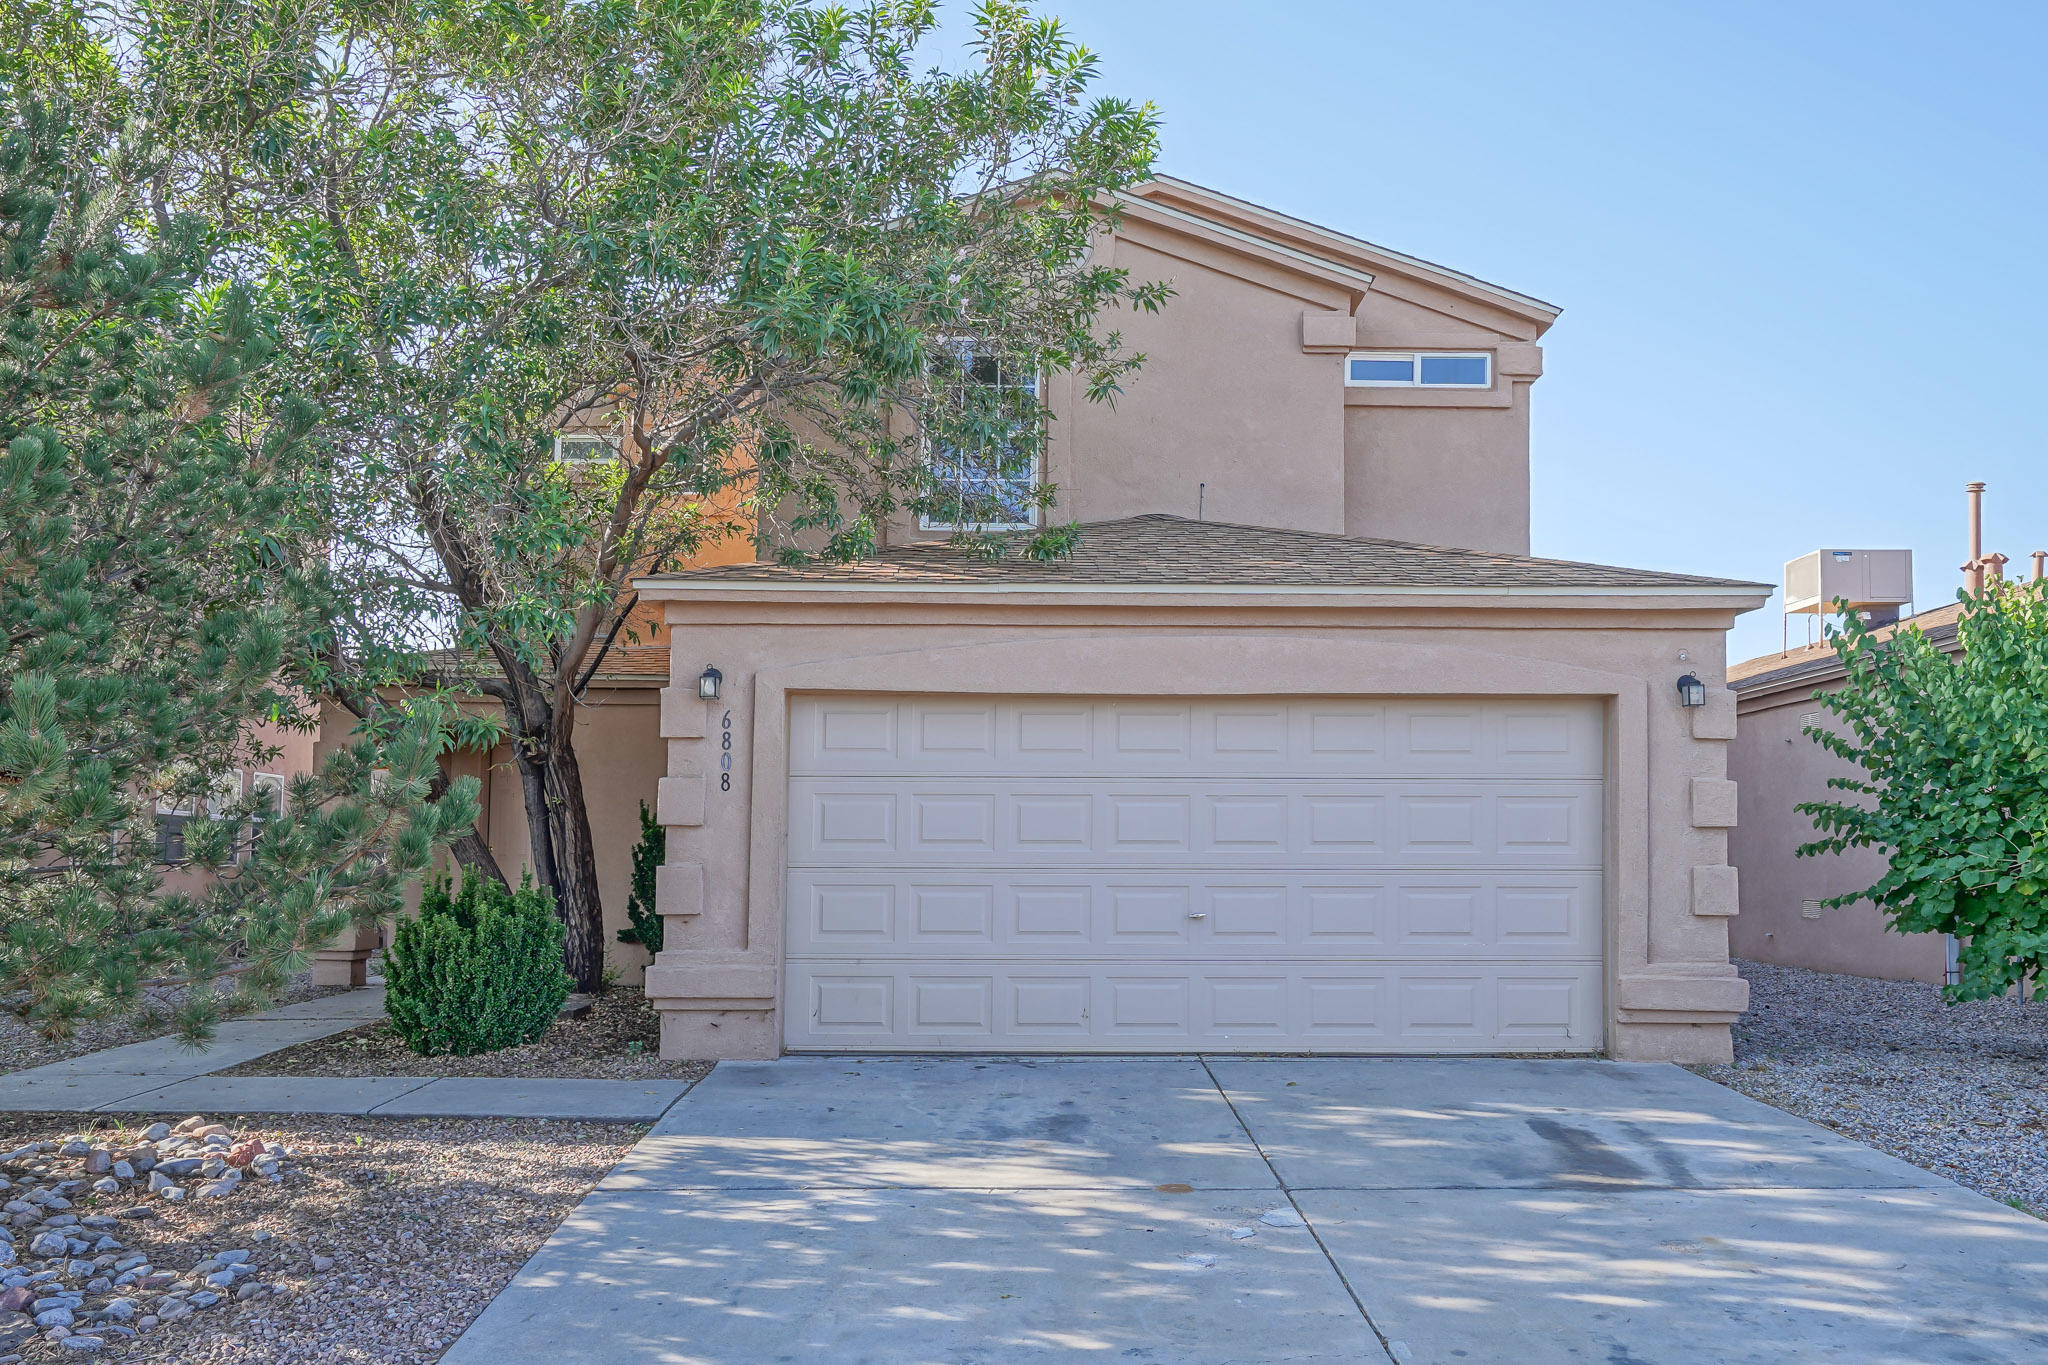 Priced to sell! Come check out this great 2 story home located in NW Albuquerque. Walk in and enjoy the bright open floor plan! Step outside to a big backyard that is completely walled in for your privacy. Upstairs you have 3 bedrooms, a small loft and 2 full bathrooms! Call today for your own private showing, this deal will not last long!!!